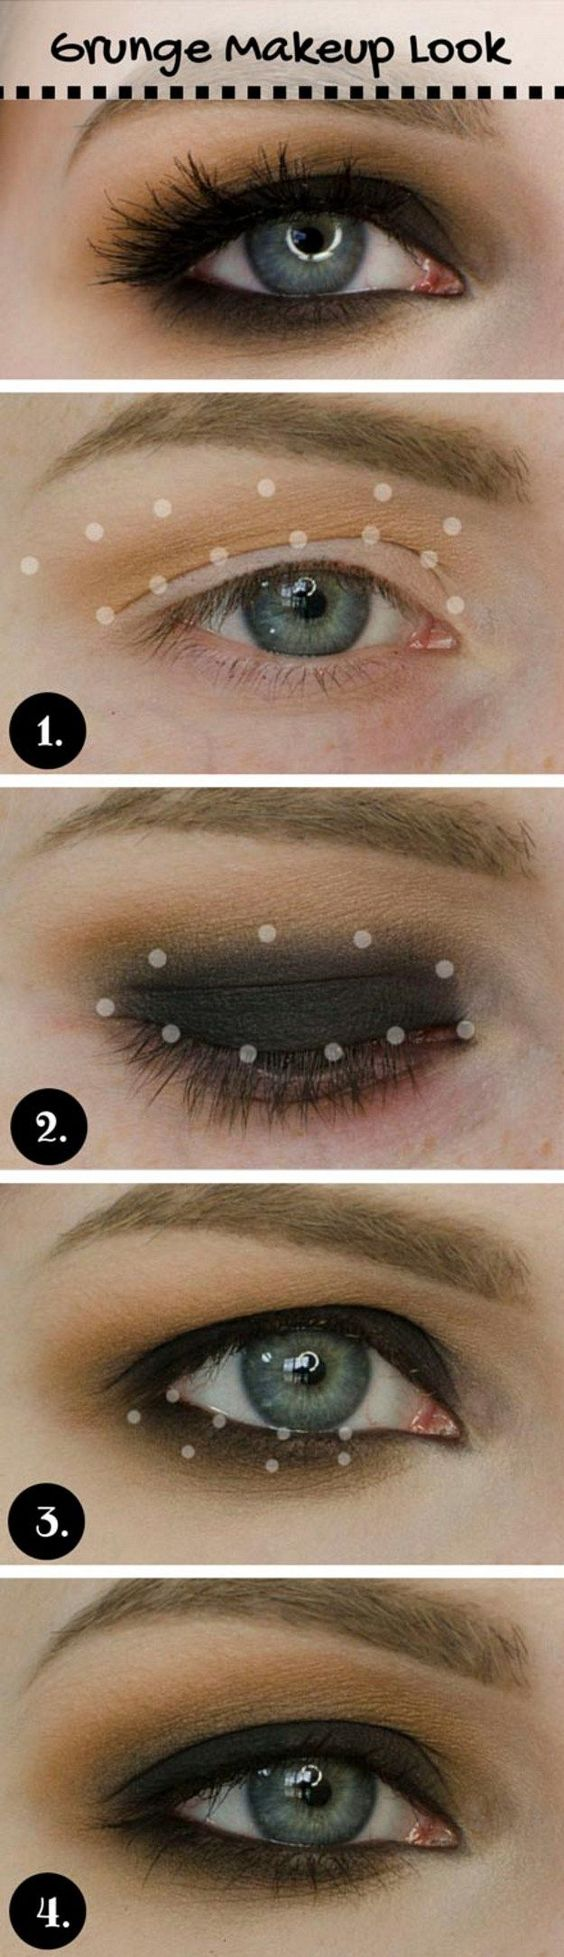 How to Do Edgy Makeup for Blue Eyes | Easy Makeup by Makeup Tutorials at http://www.makeuptutorials.com/makeup-tutorial-12-makeup-for-blue-eyes